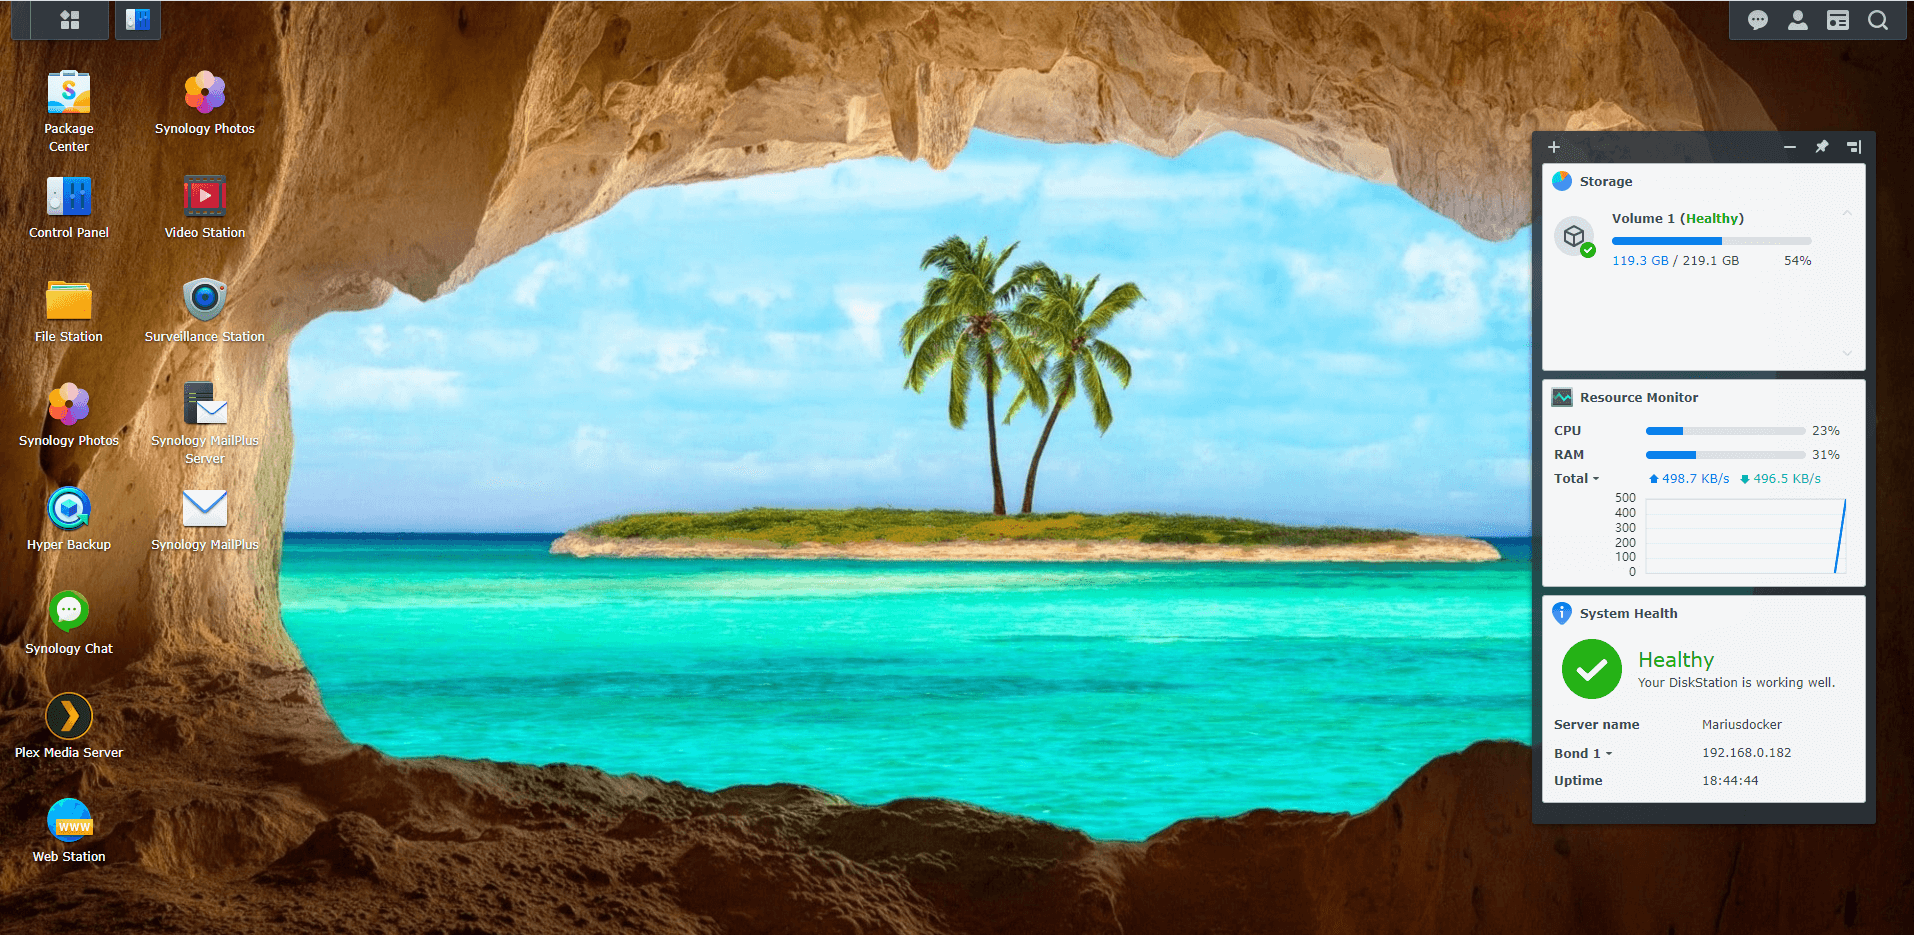 Synology Cave Wallpapers For DSM 7 8